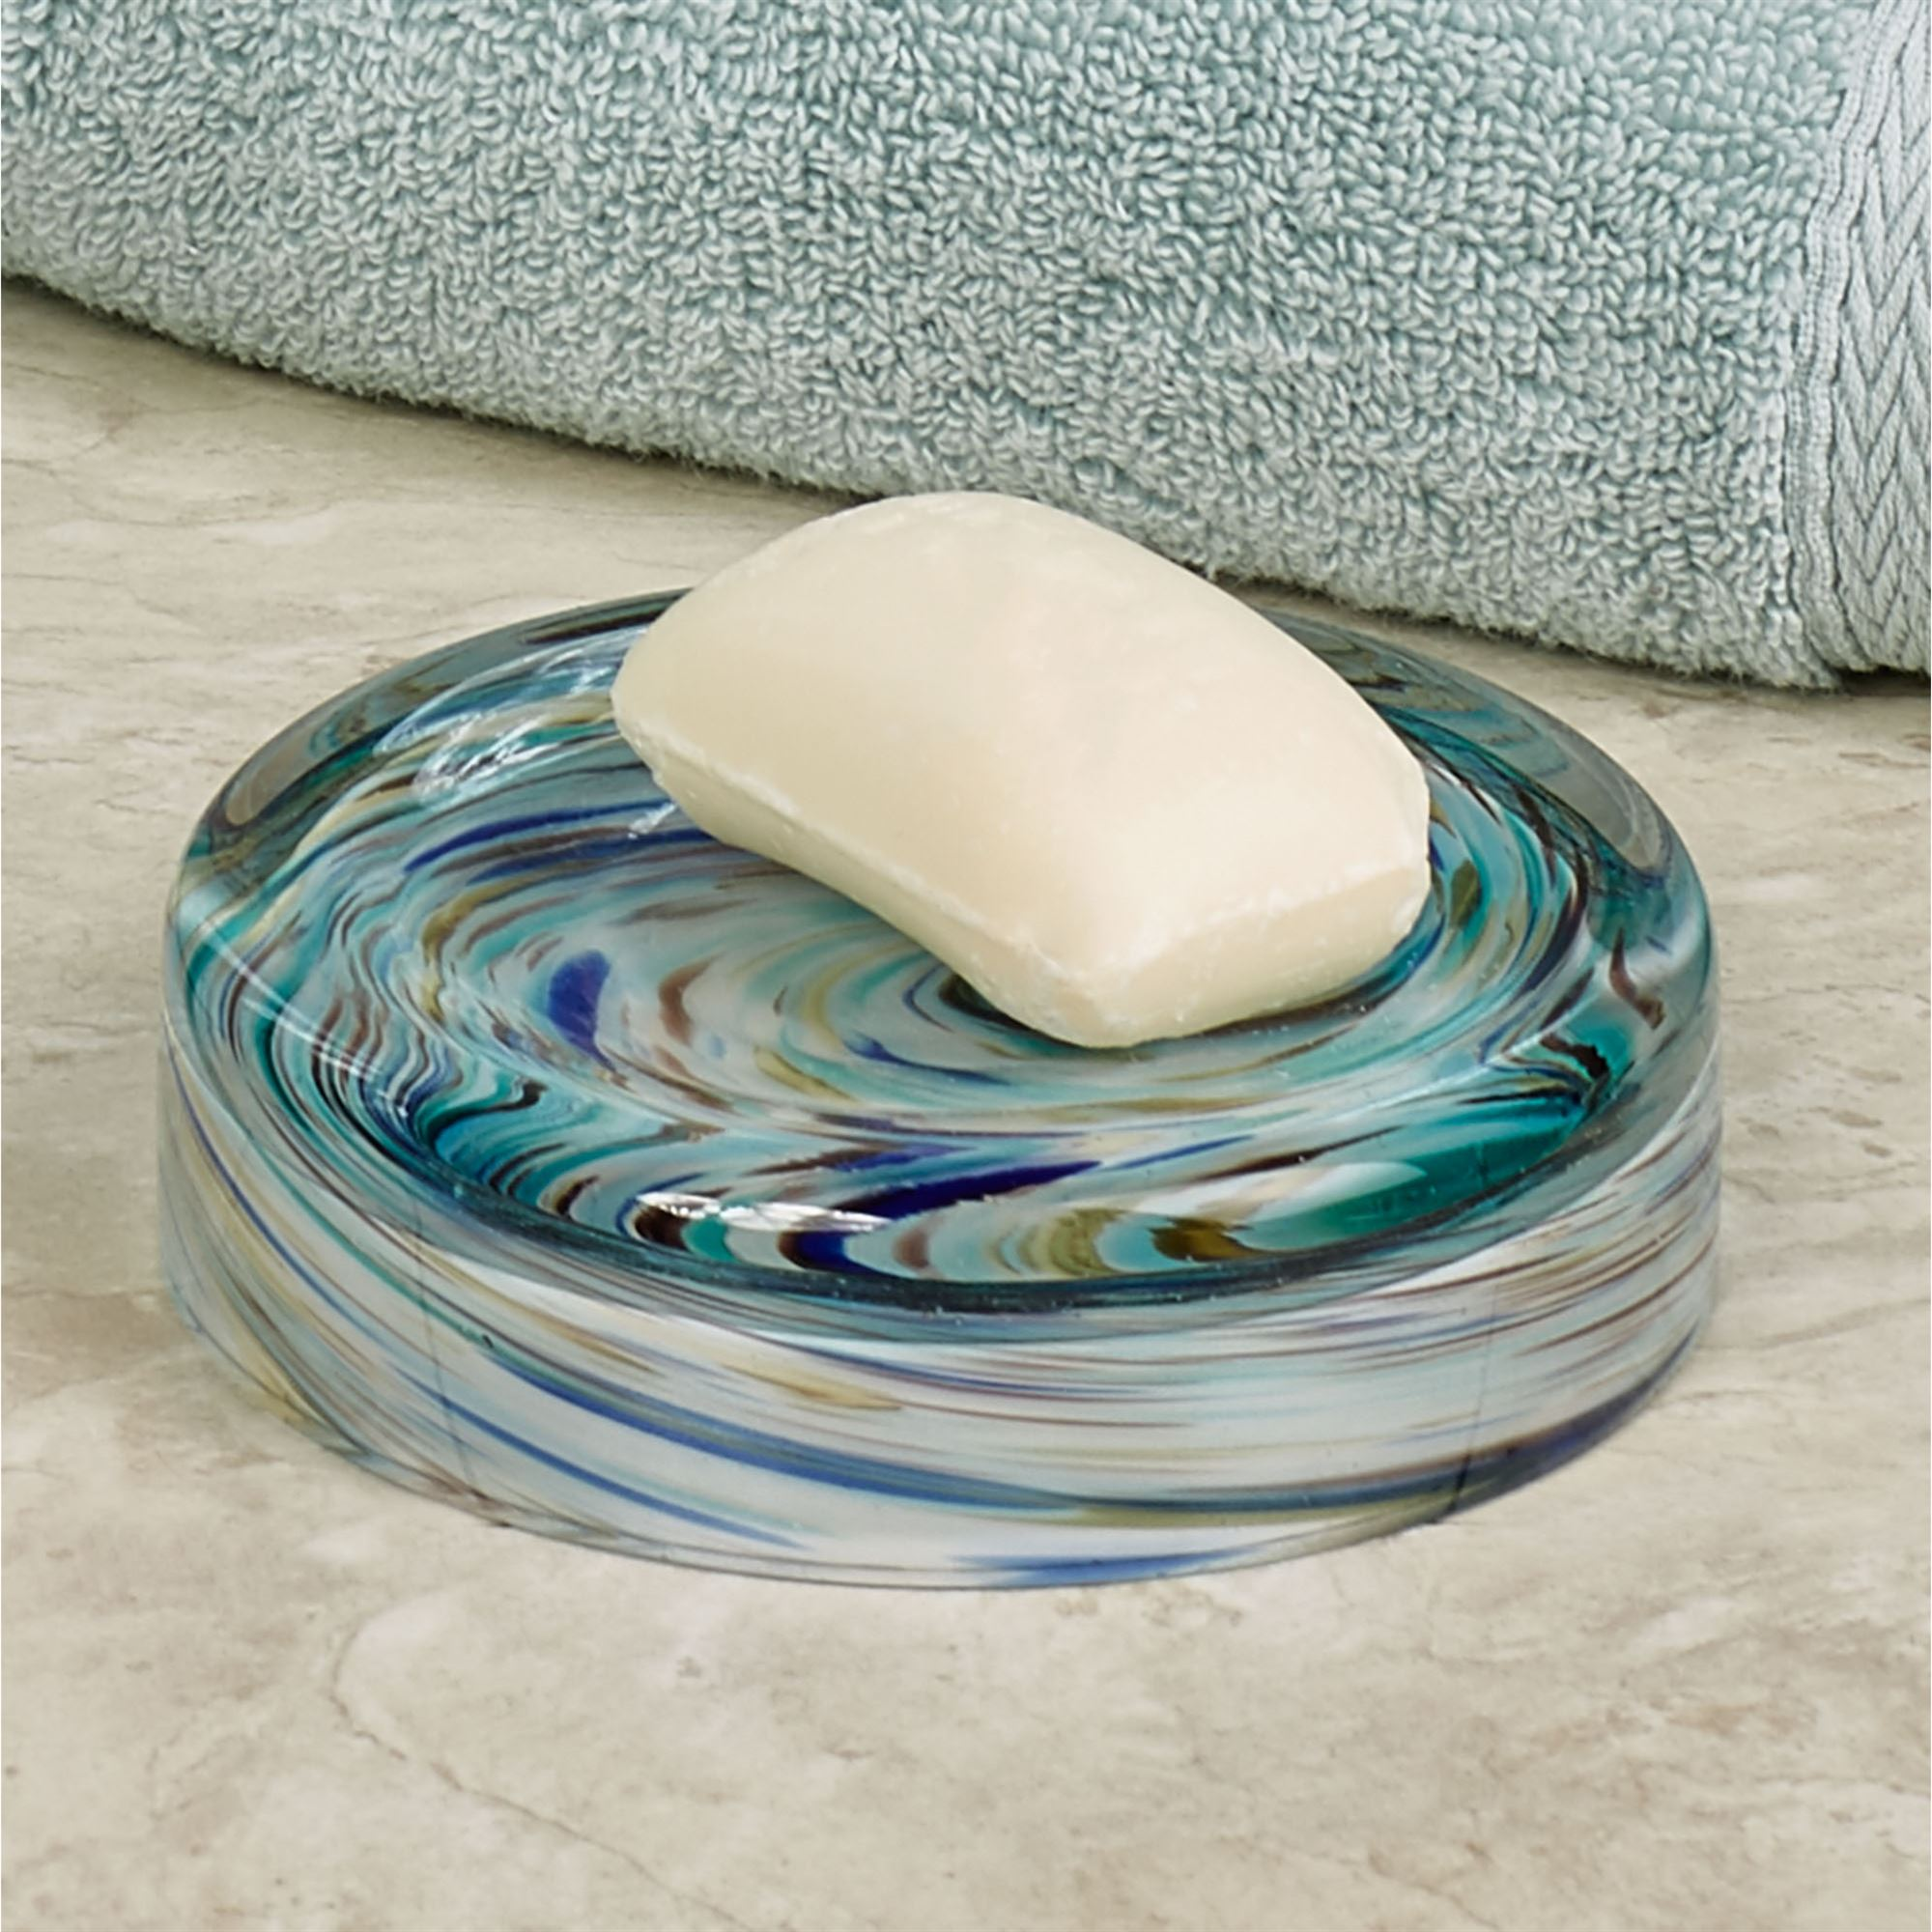 blue glass bathroom accessories. Blue Swirl Soap Dish Turquoise Glass Bathroom Accessories